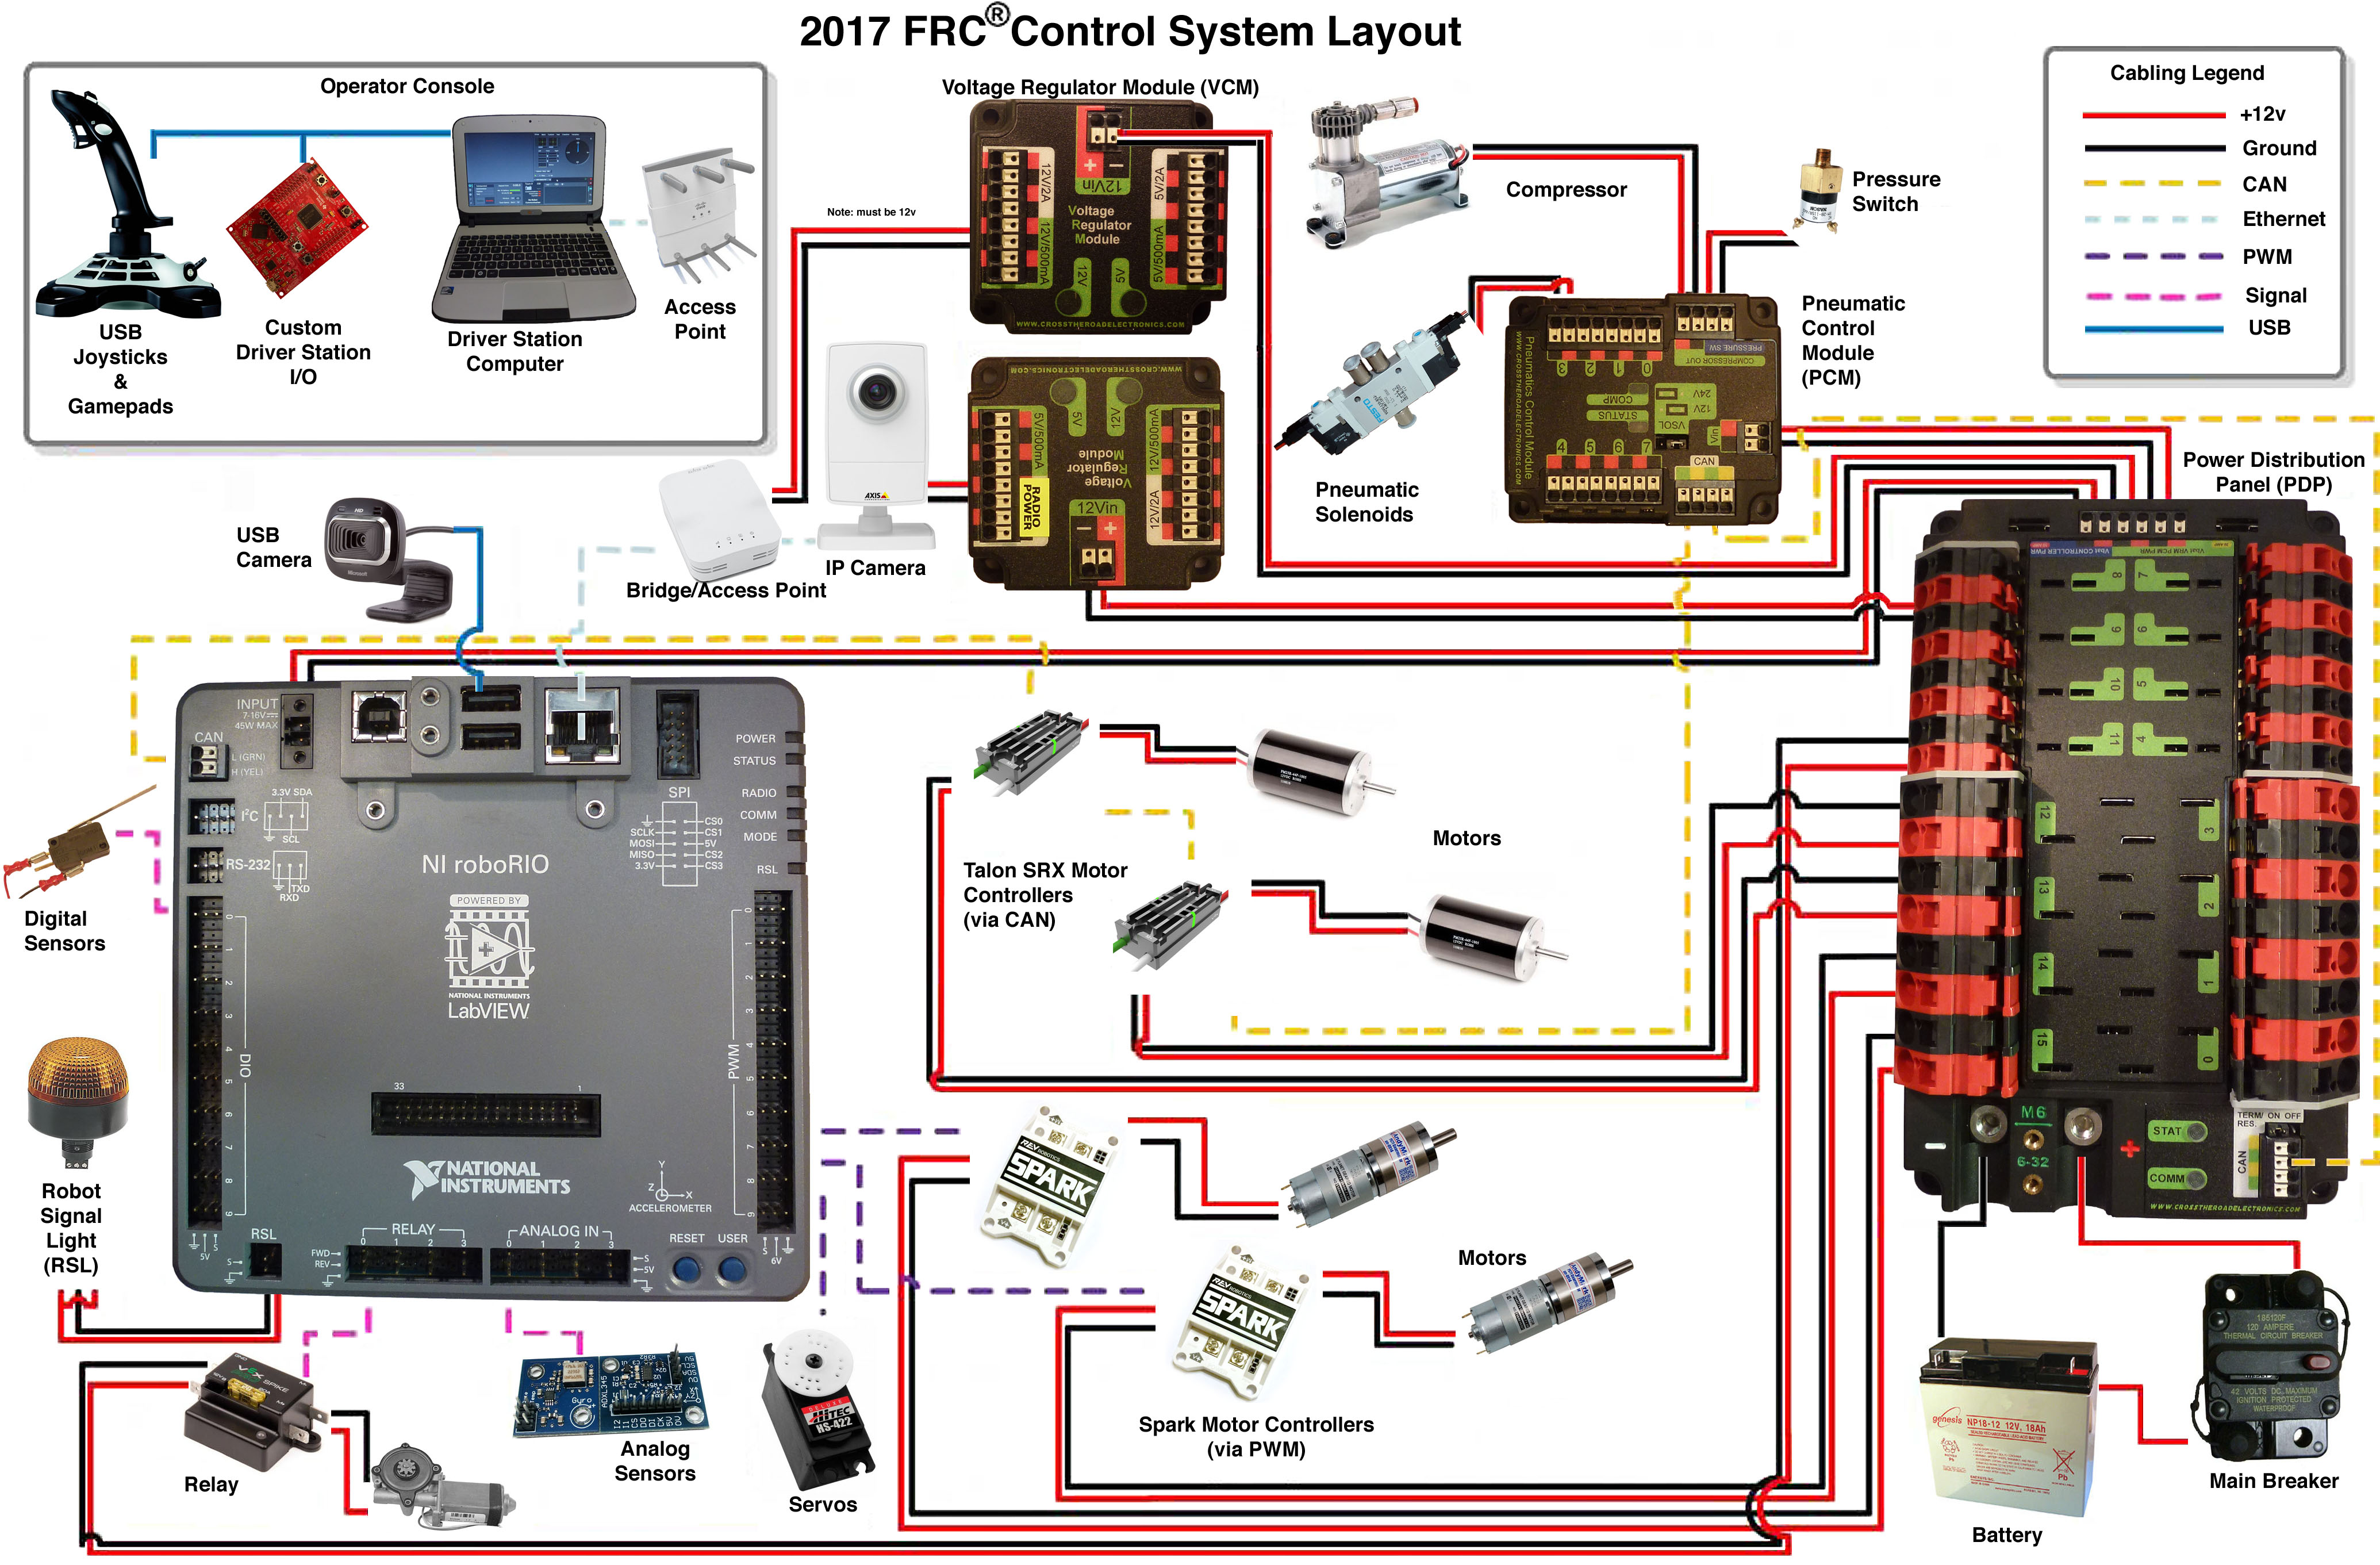 2016_CS_Layout team358 org robotic eagles first� robotics competition 2017 frc wiring diagram at fashall.co